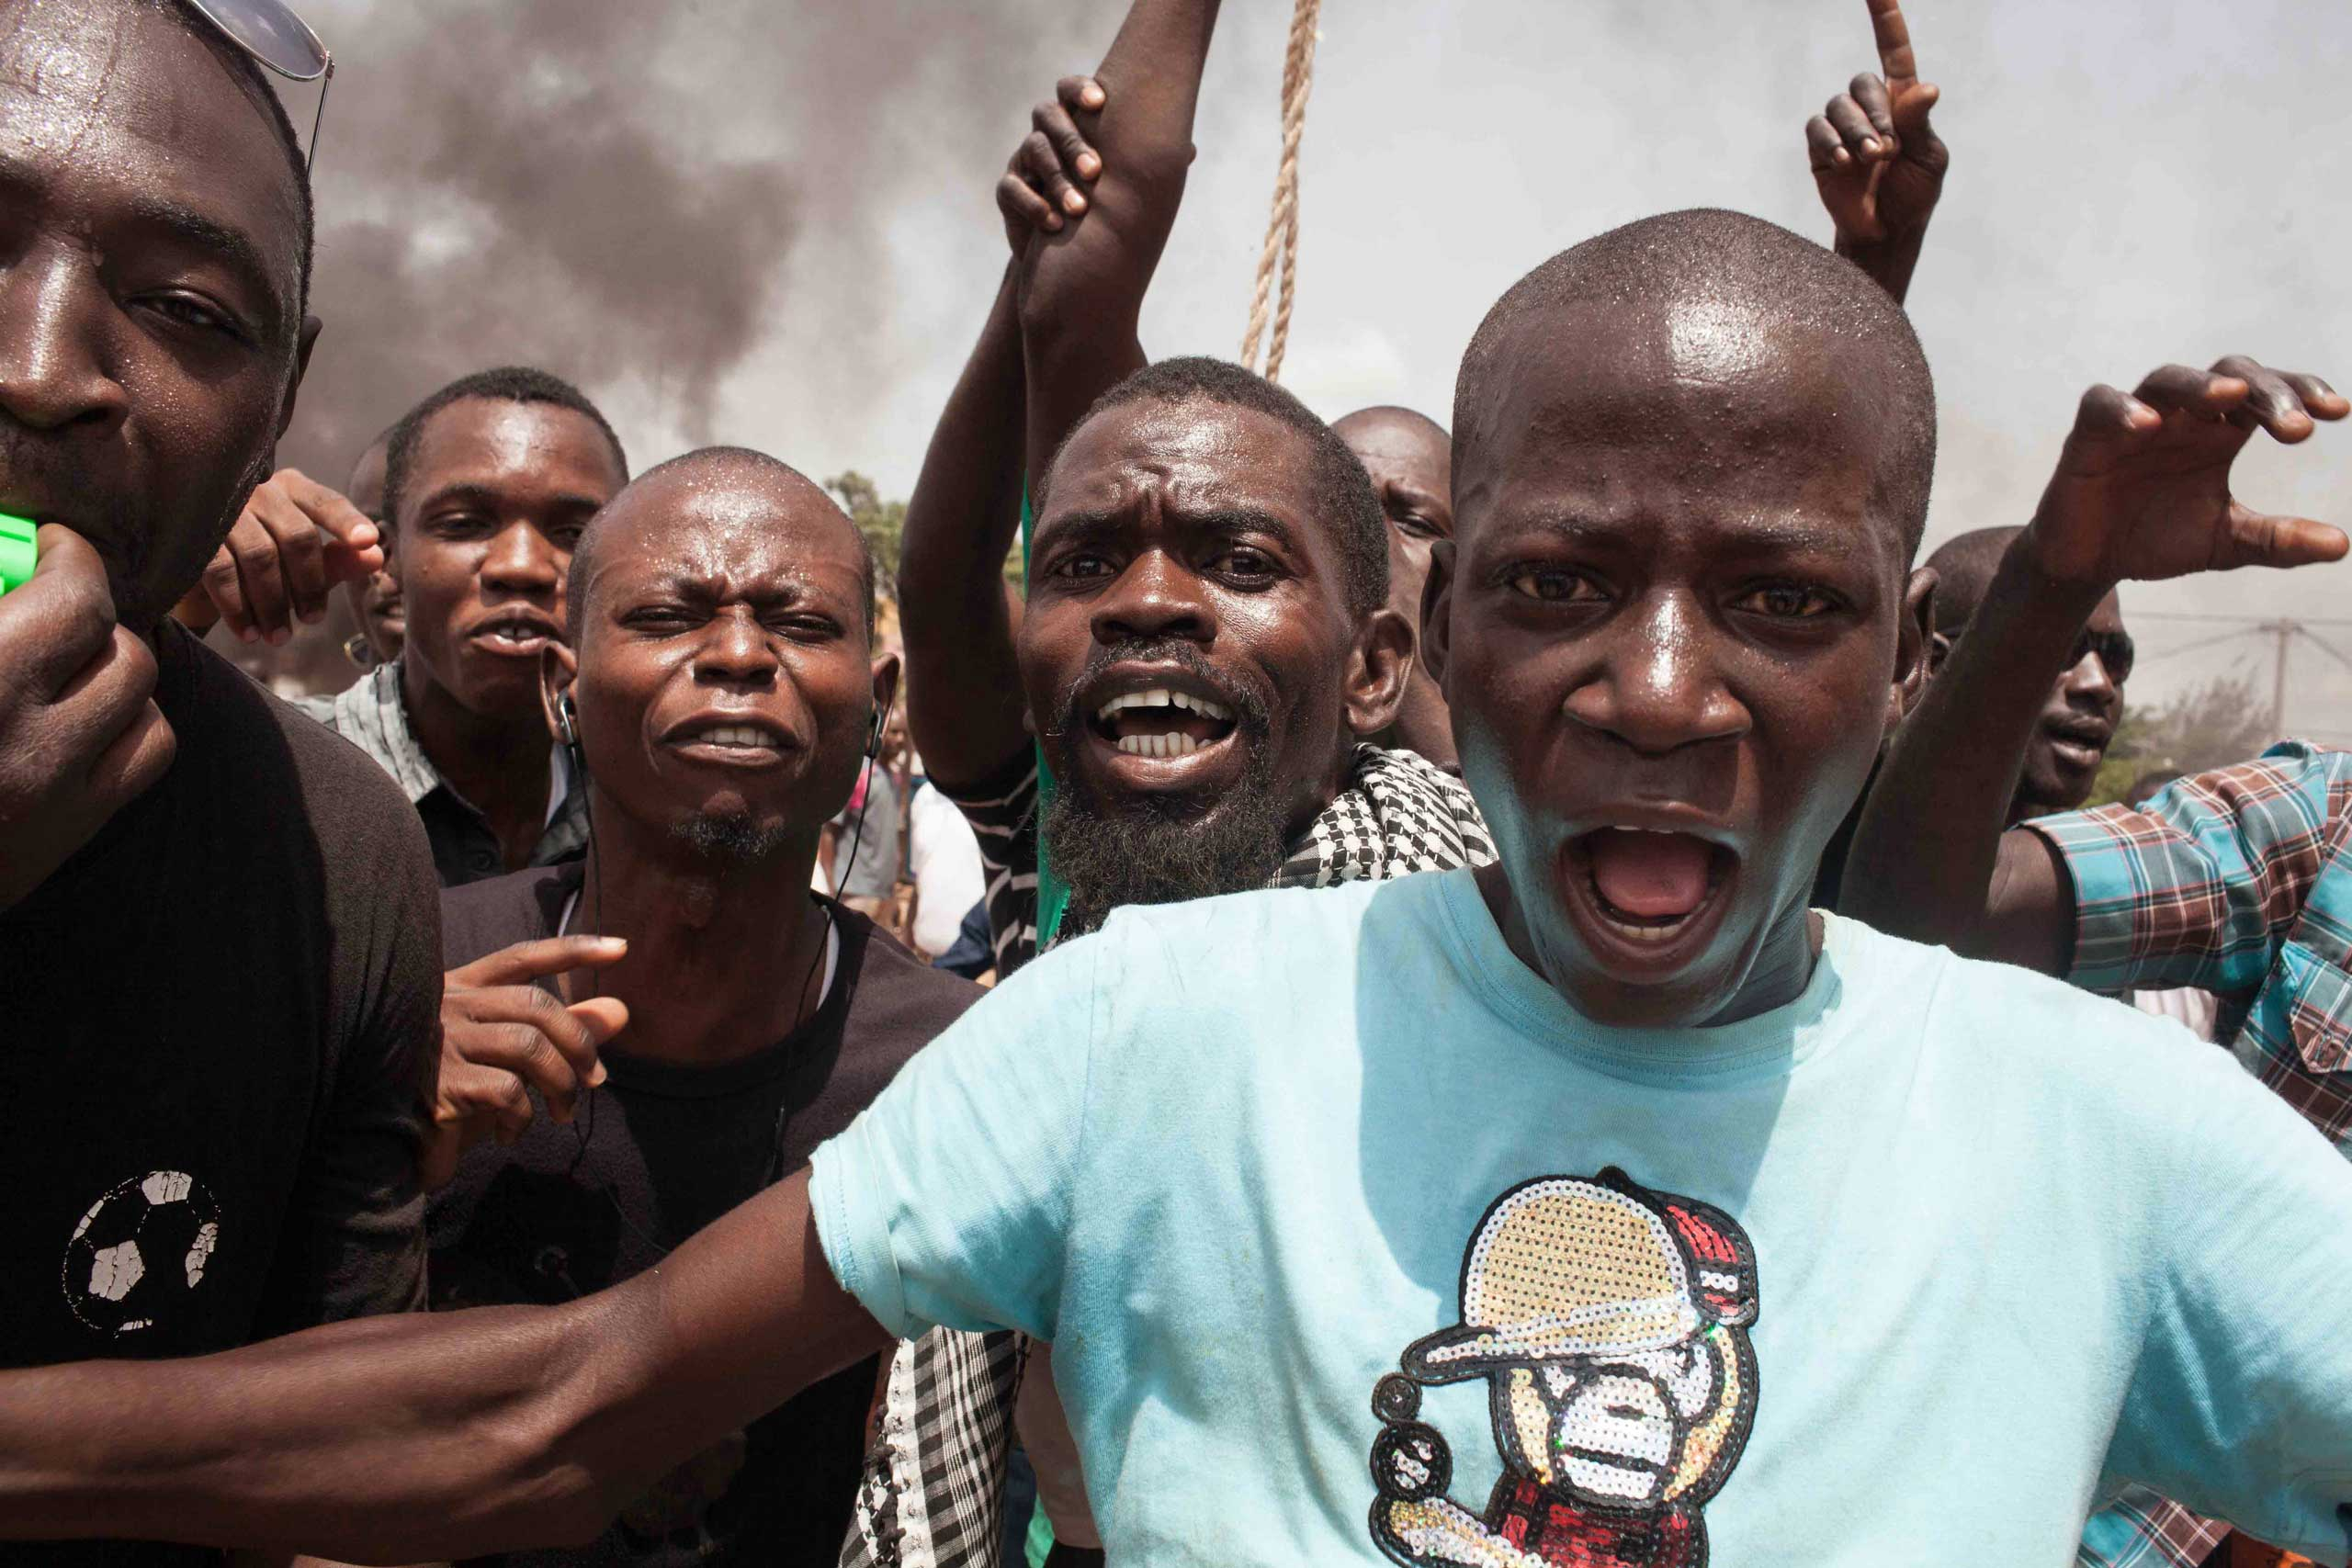 Burkina Faso protestors shout out as they take to the streets in the city of Ouagadougou, Burkina Faso, on Sept. 17, 2015.